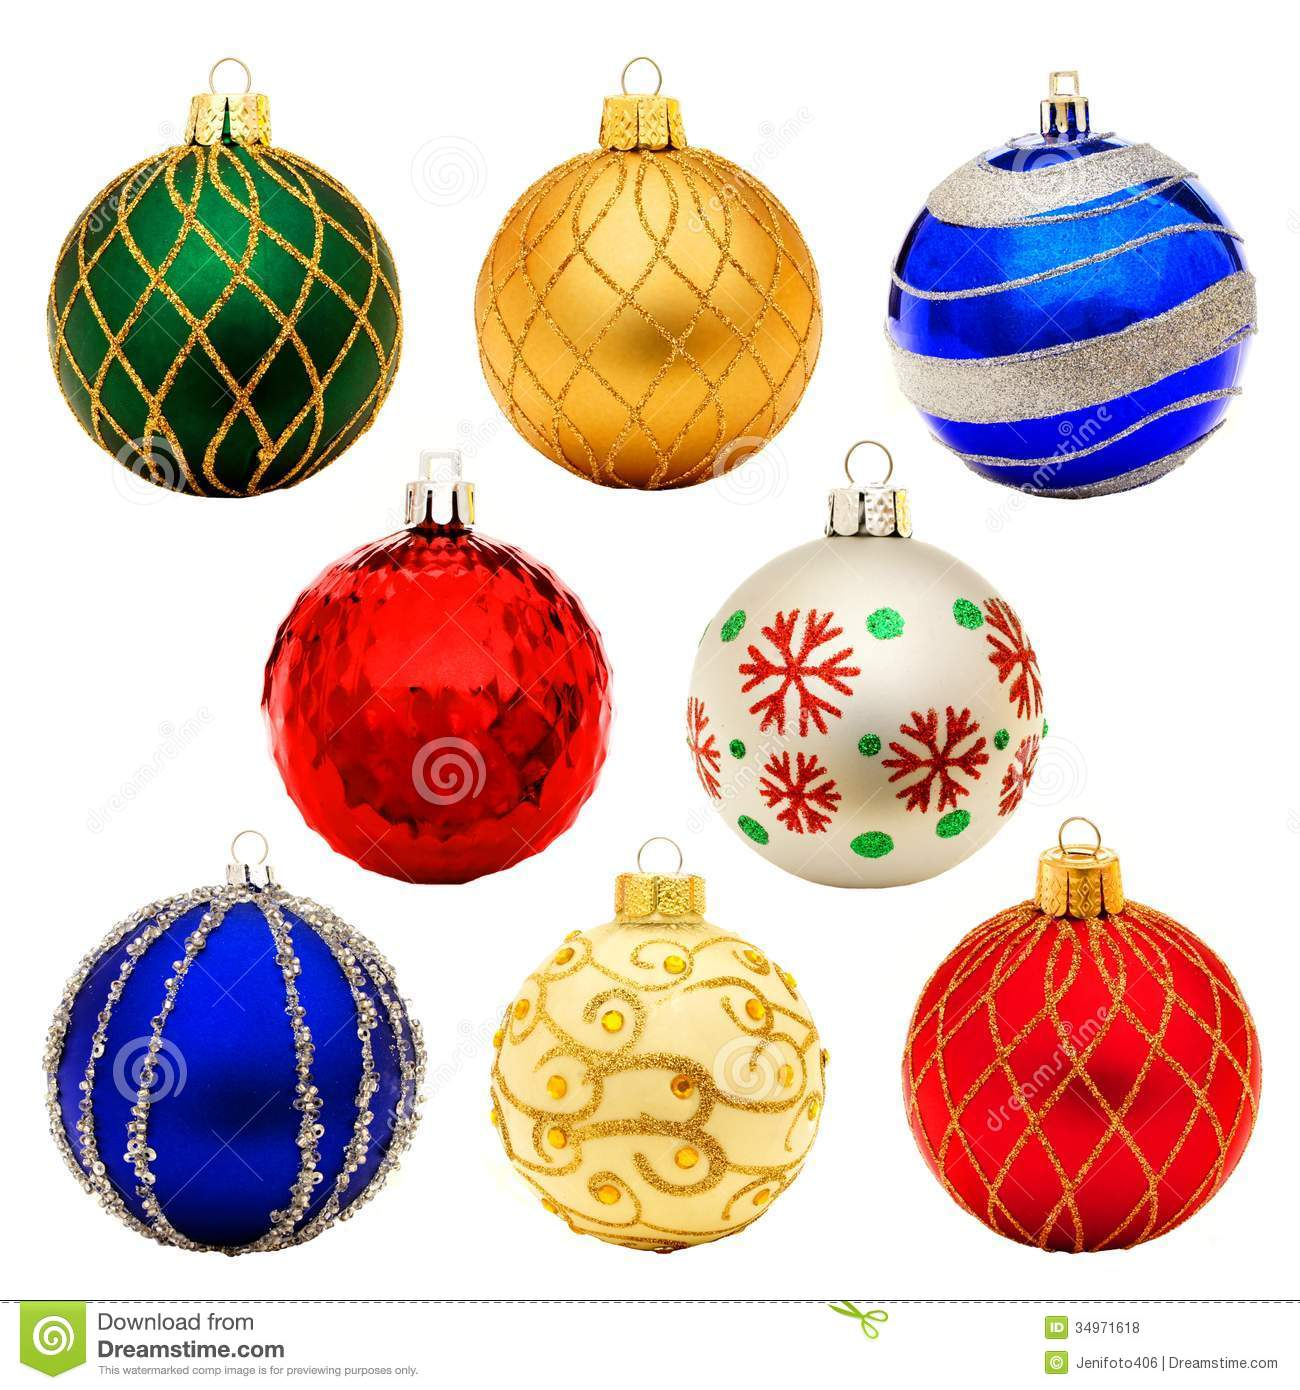 Old Fashioned Christmas Ball Ornaments